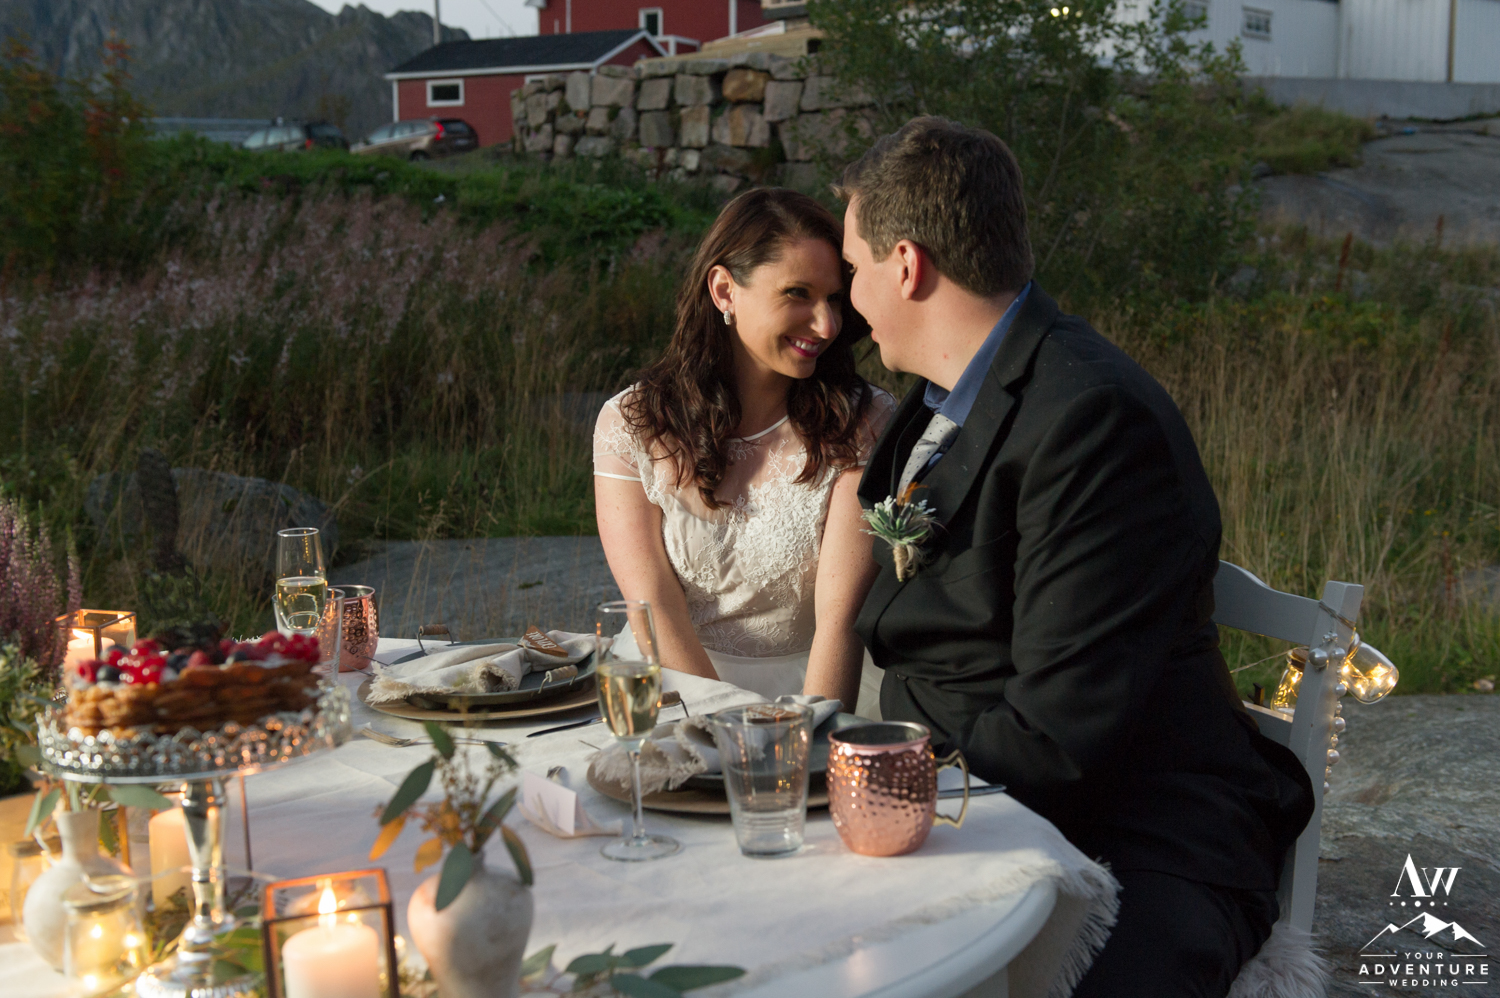 lofoten-islands-wedding-photos-your-adventure-wedding-94